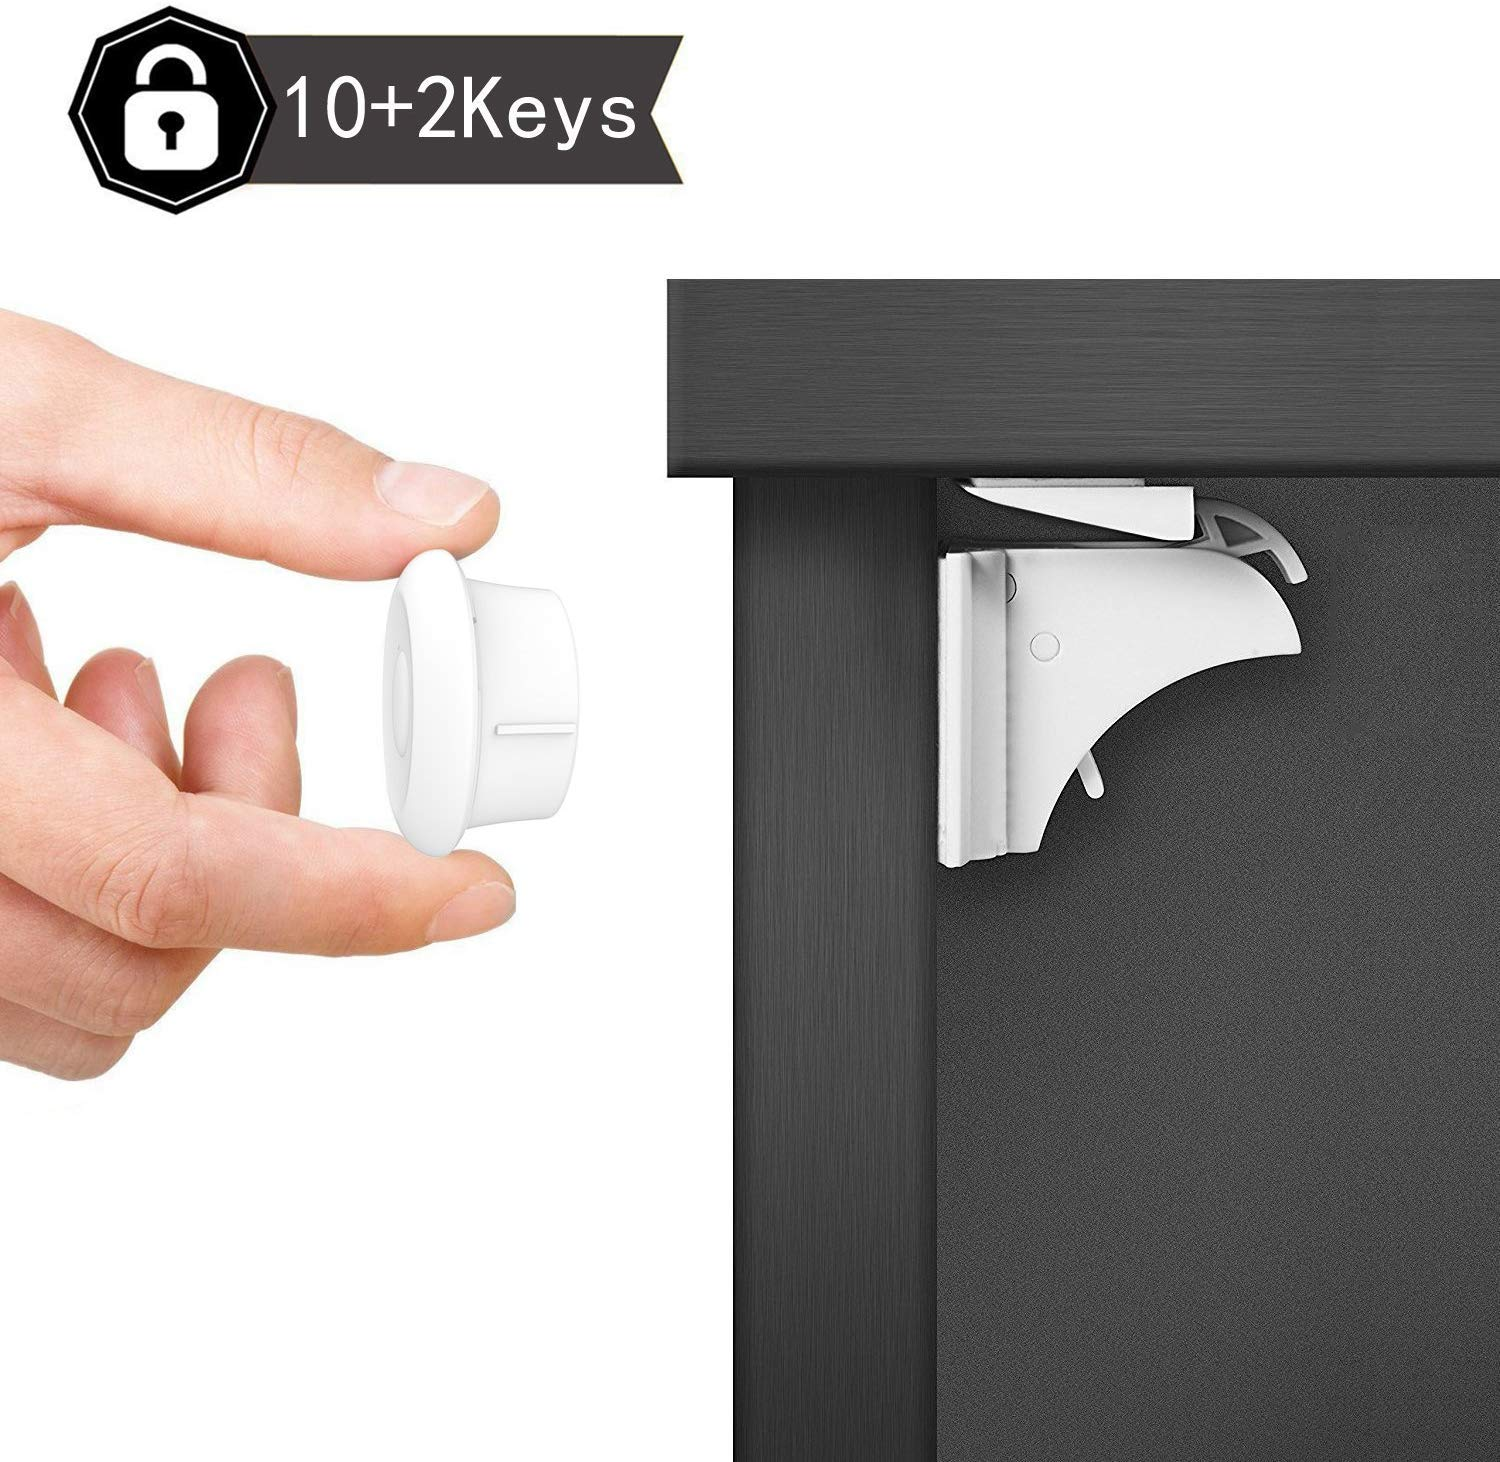 Safety concealed Magnetic Cabinet Locks-No Drilling-2 Locks+1 key